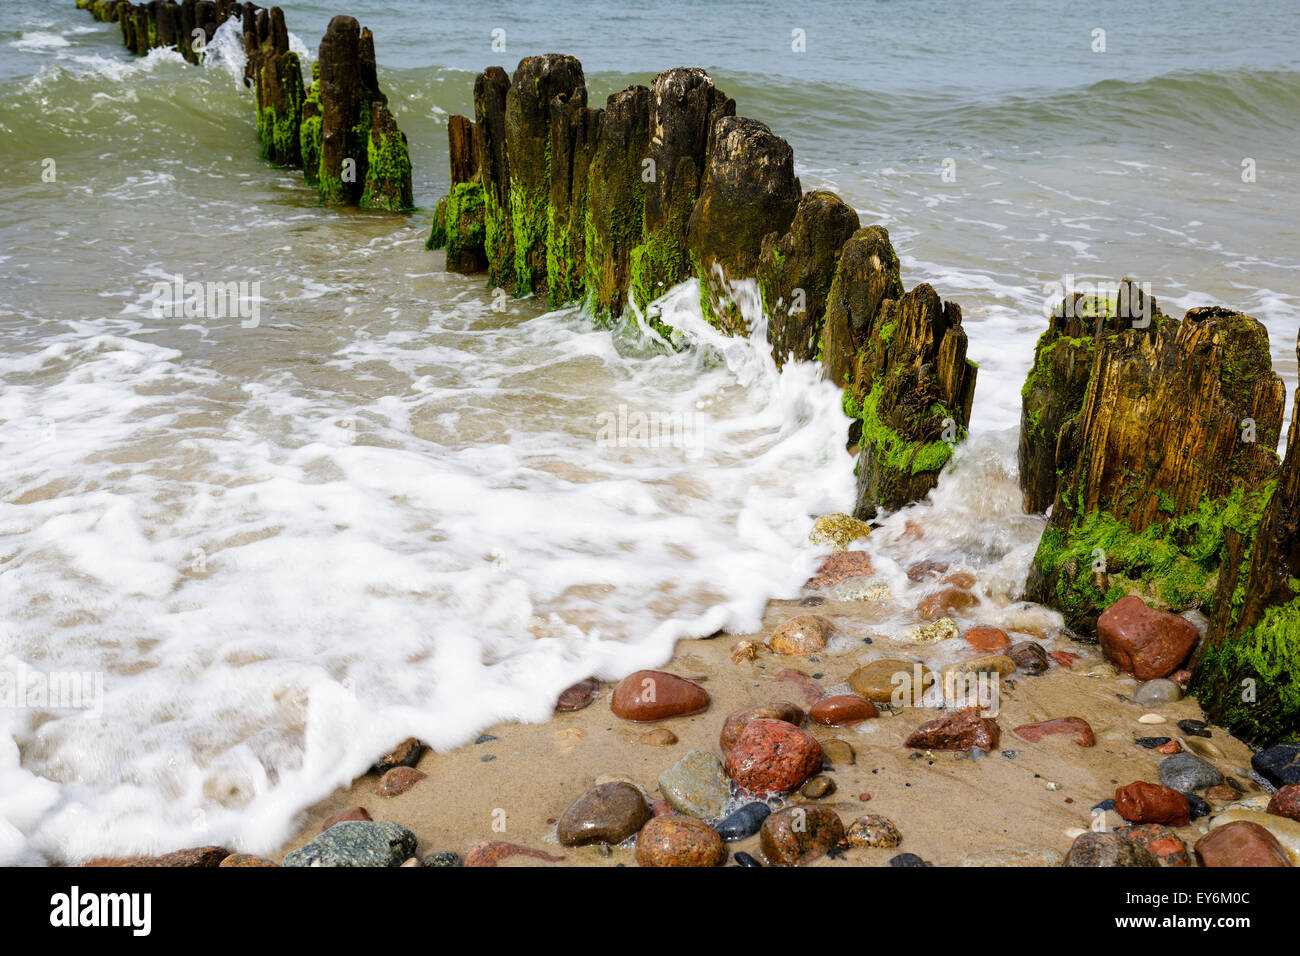 old and rotten wooden breakwaters - Stock Image